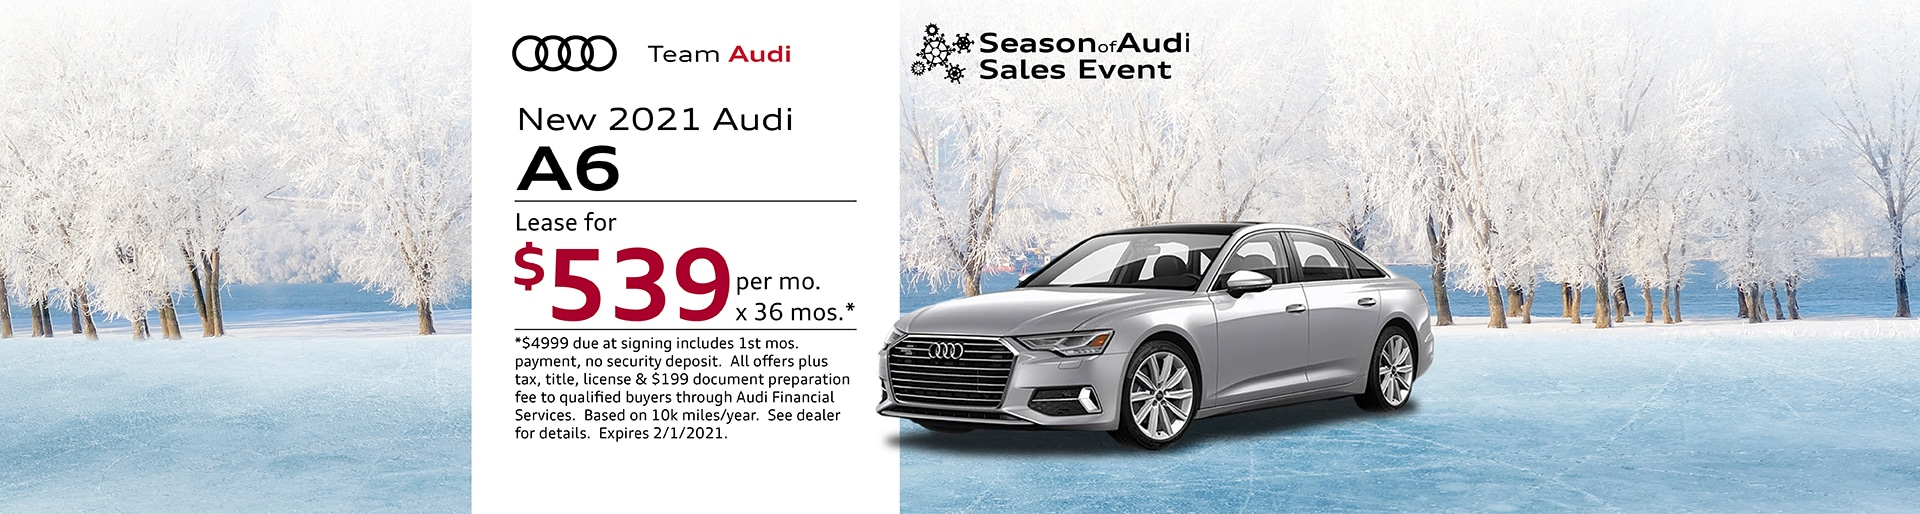 2021 Audi A6 Special Offer | Merrillville, IN